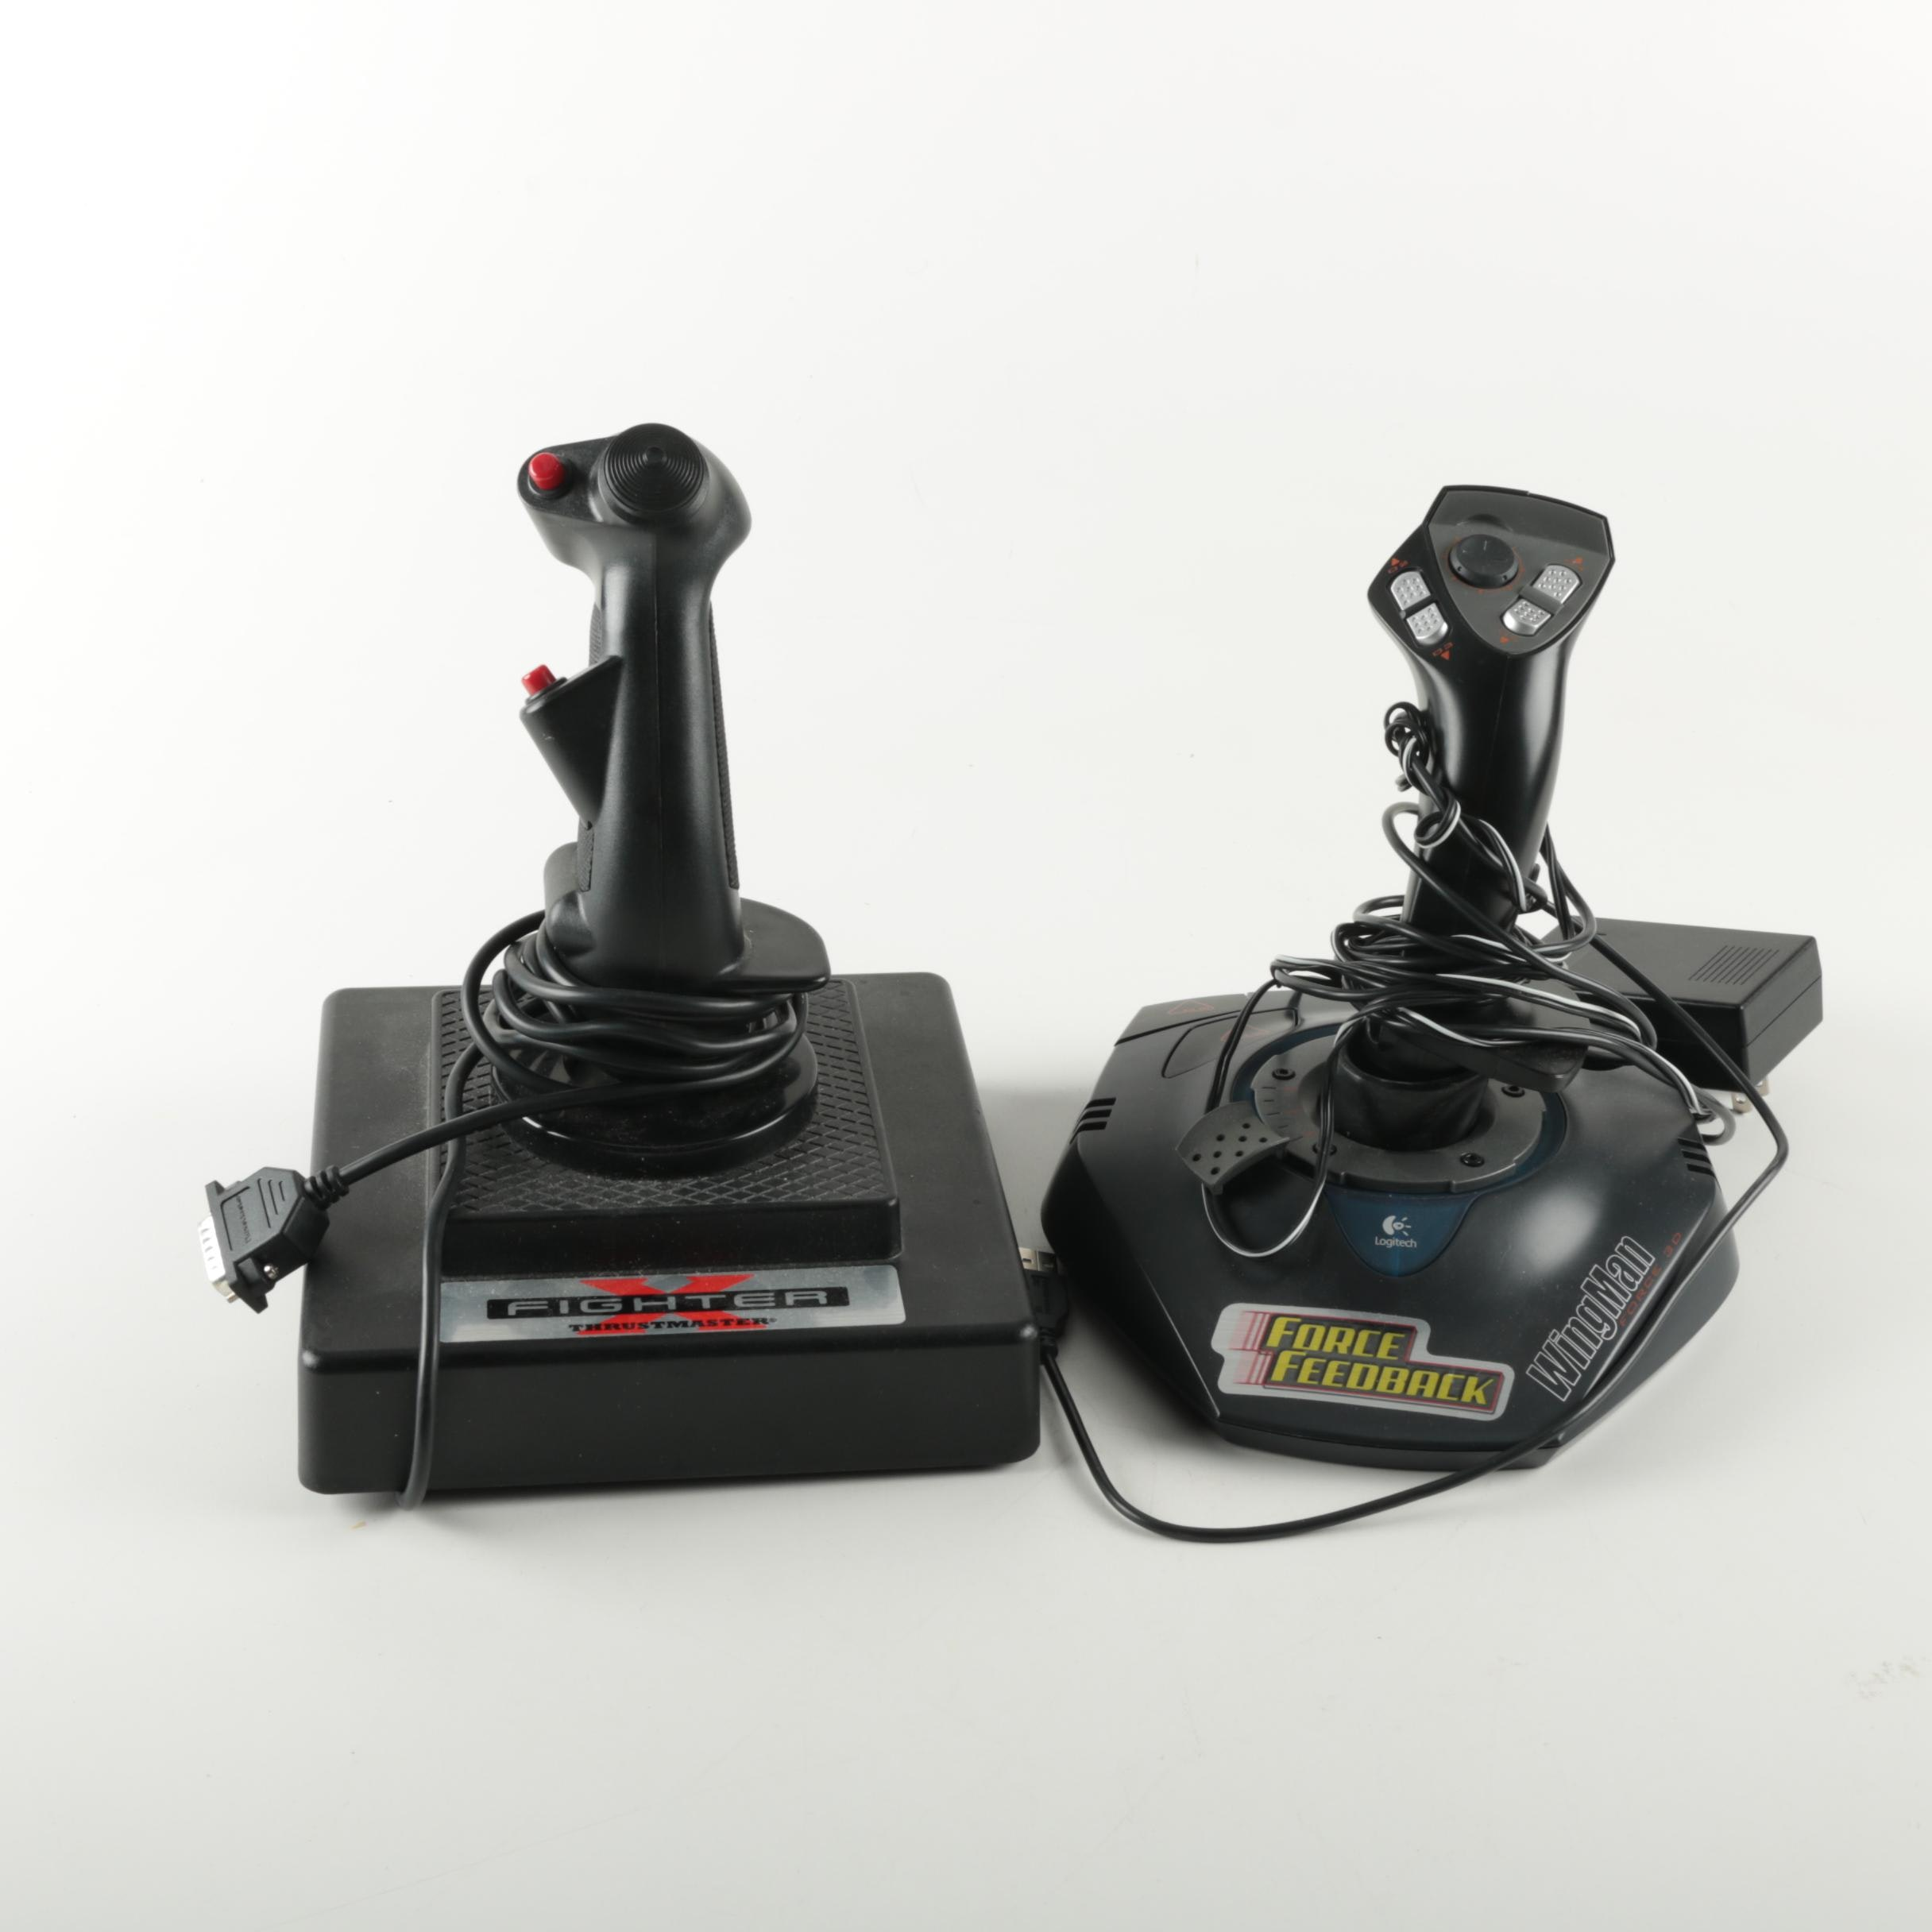 Set of Two PC Controllers